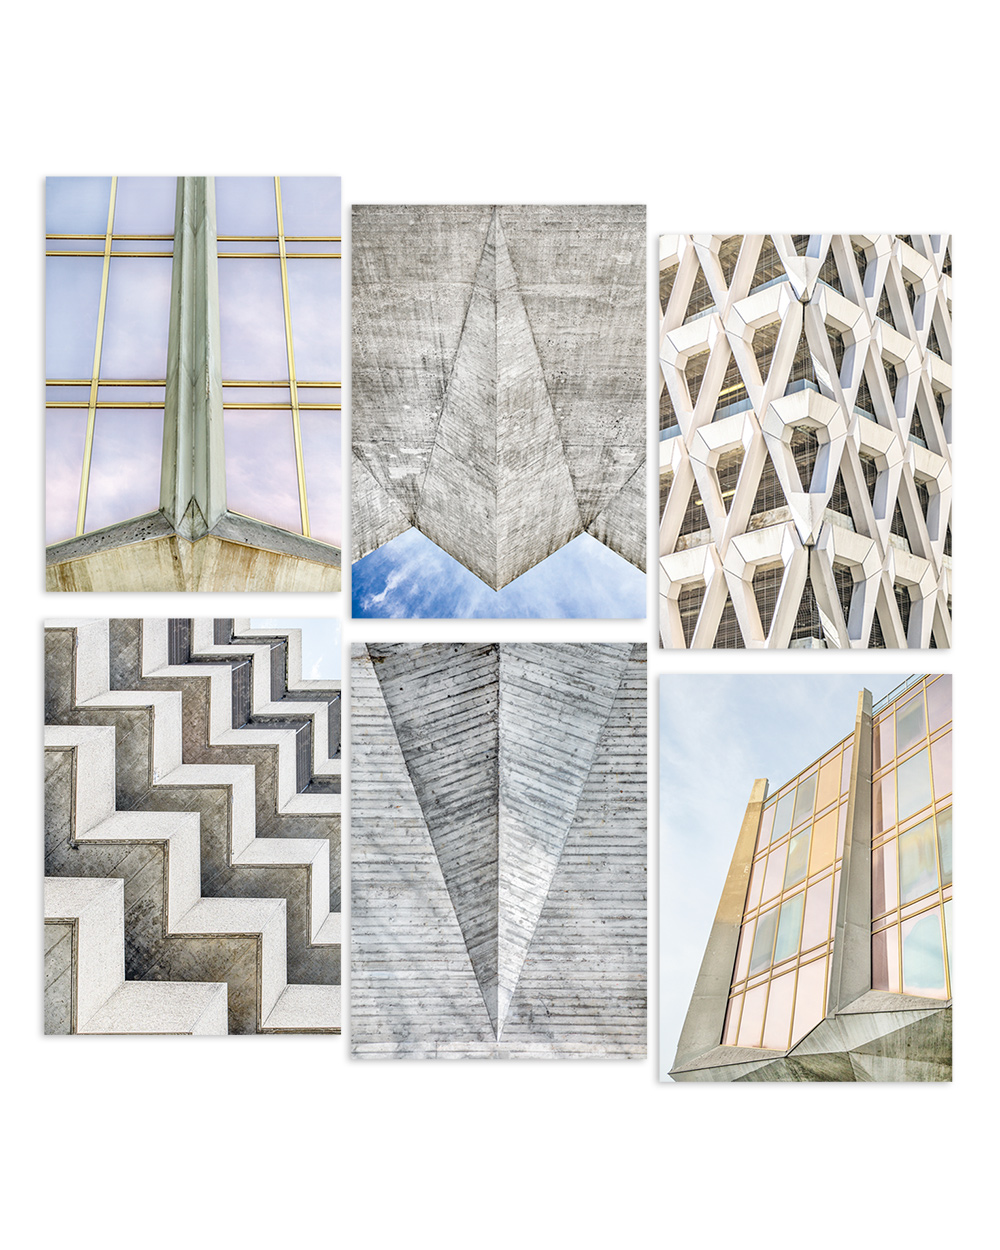 Brutalist Beauties 2, set of 6 postcards A6 feat. Masonry Hall, La Tulipe, Welbeck Street Car Park, Autosilo Balestra I © Heartbrut / Karin Hunter Bürki